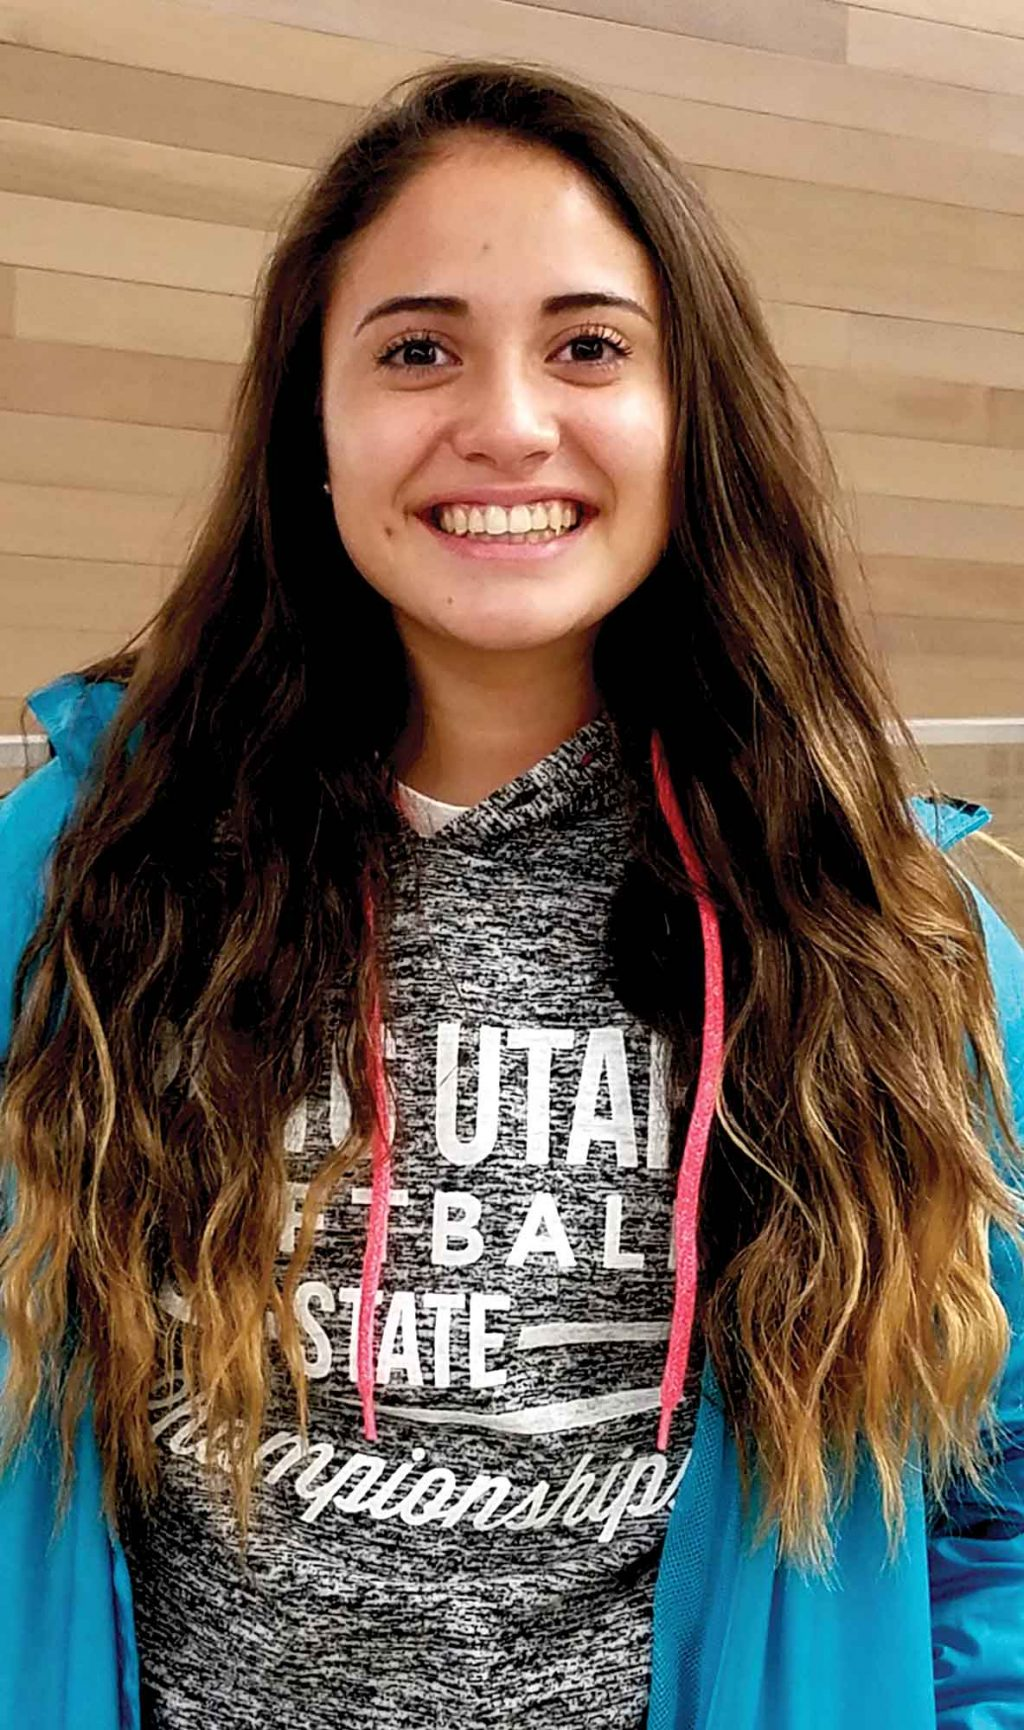 angie_copy.jpg